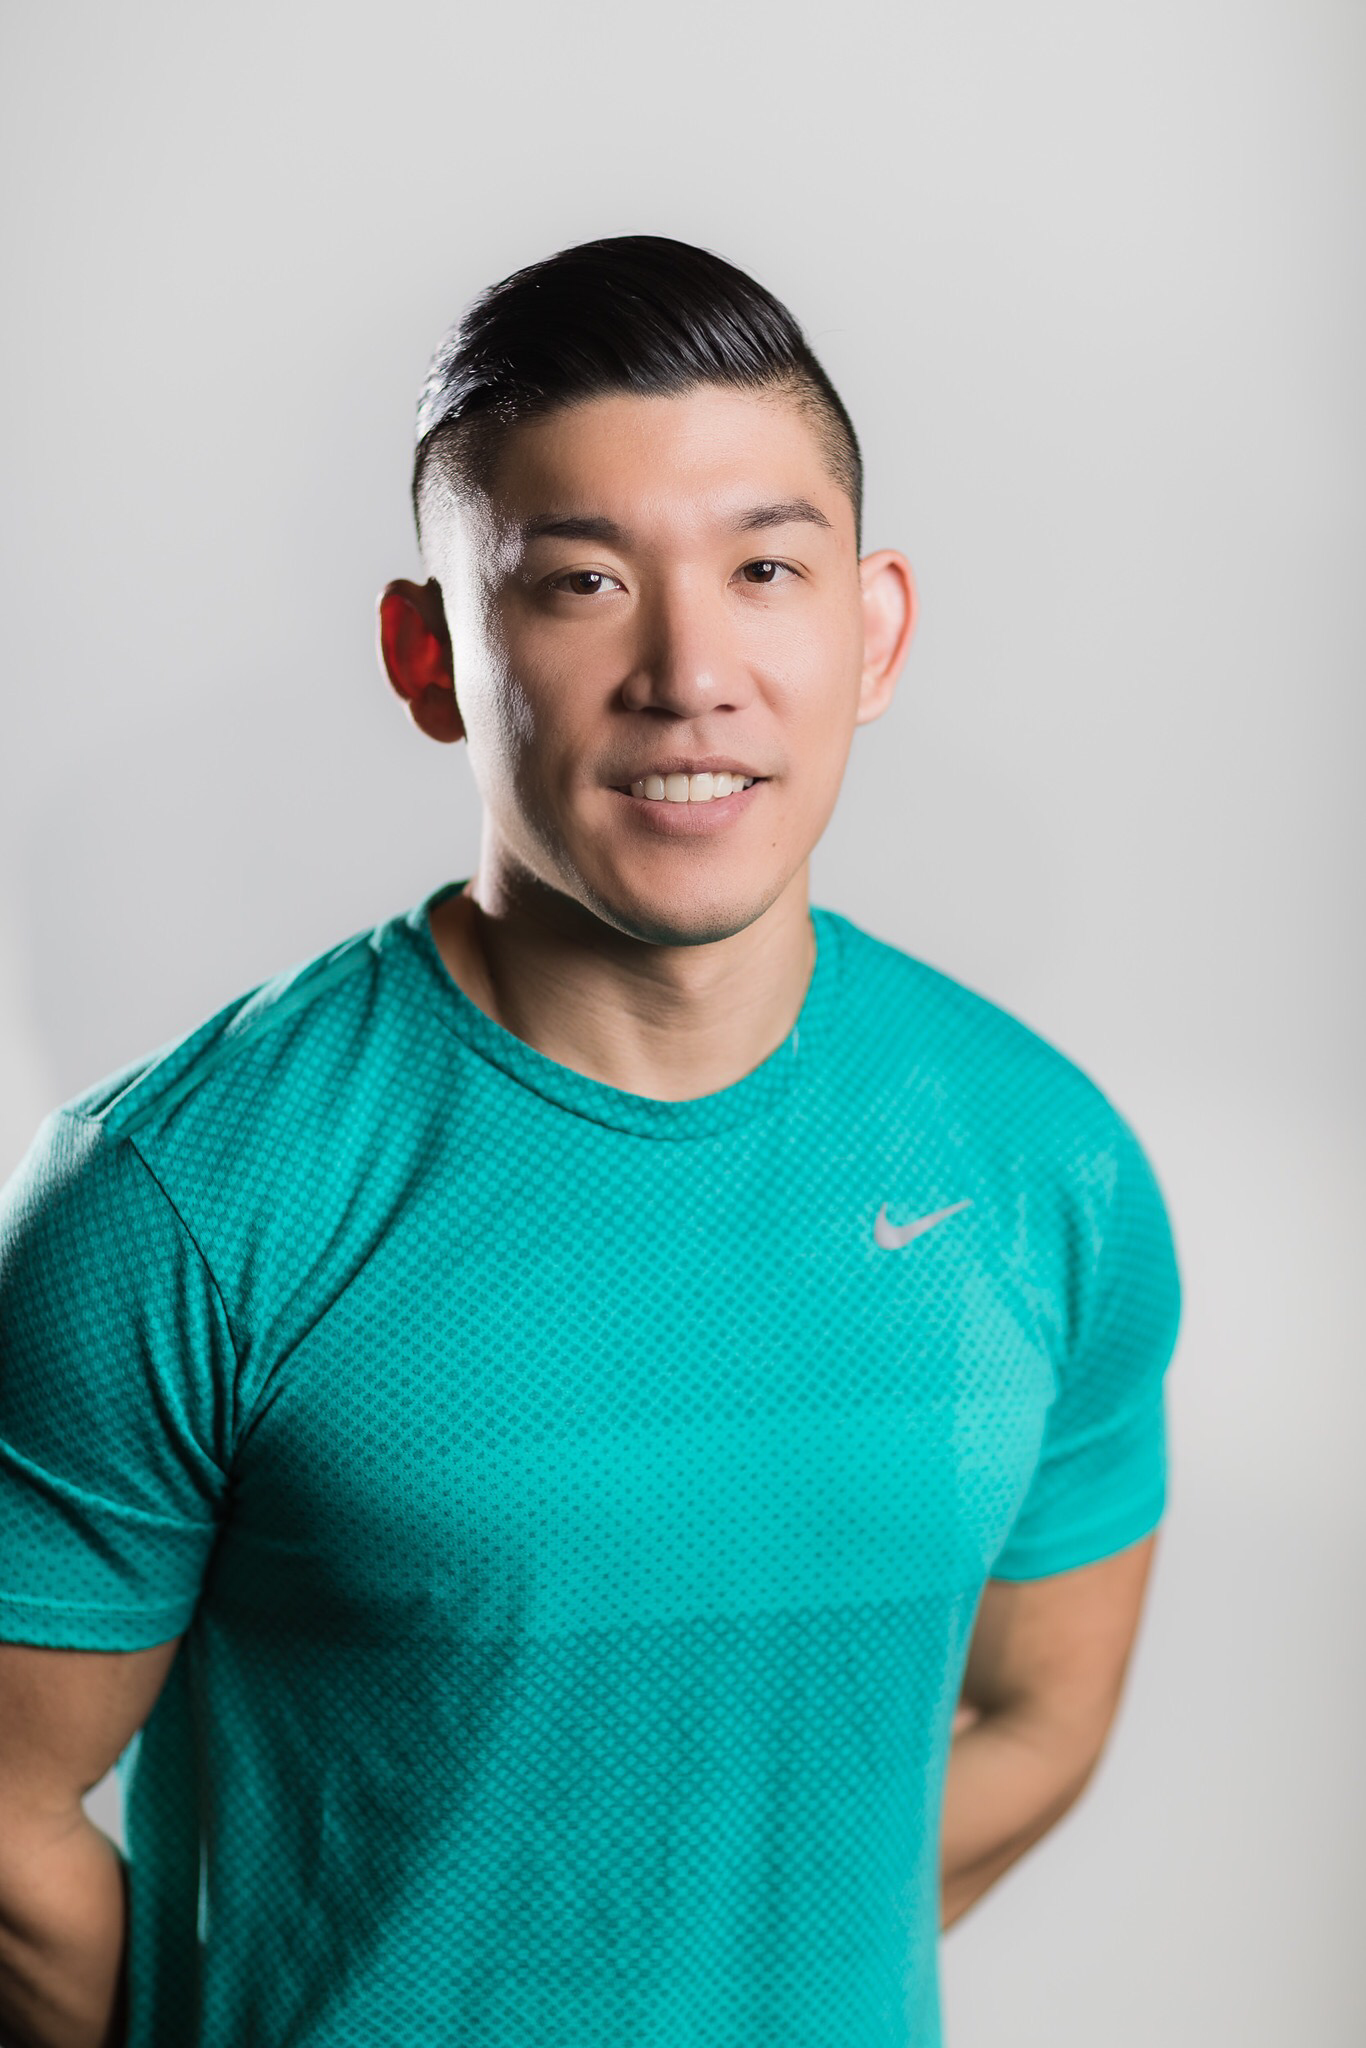 Danny Lee - OC Life Fitness was launched by owner Danny Lee after his own struggles and frustrations to find a personal trainer. Upon graduating from the University of California, Irvine (UCI), Danny became employed by Merrill Lynch but soon realized that his passion in life was not finance but fitness.After becoming NCSF certified and conducting hundred of hours of research, Danny created a custom workout and nutrition plan designed to quickly shed fat, tone muscle, and look great. He brings 15 years of knowledge and expertise to cater to clients in all walks of life.